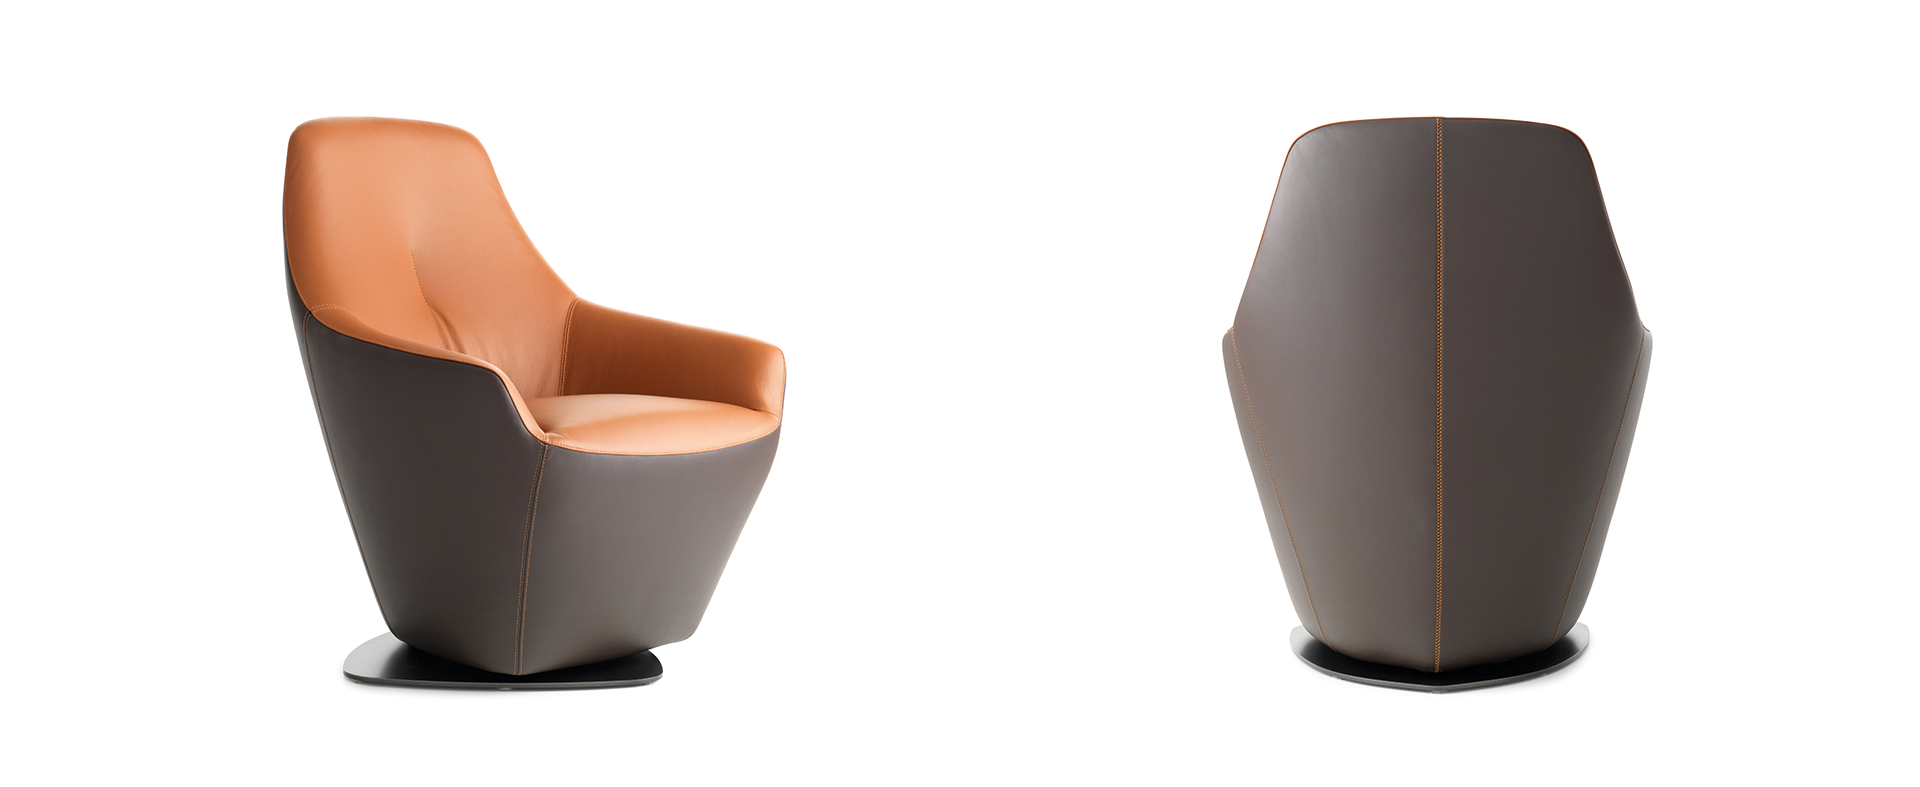 Leolux Cantate Armchair Design Design By By Armchair Leolux Cantate shCoQdxtrB